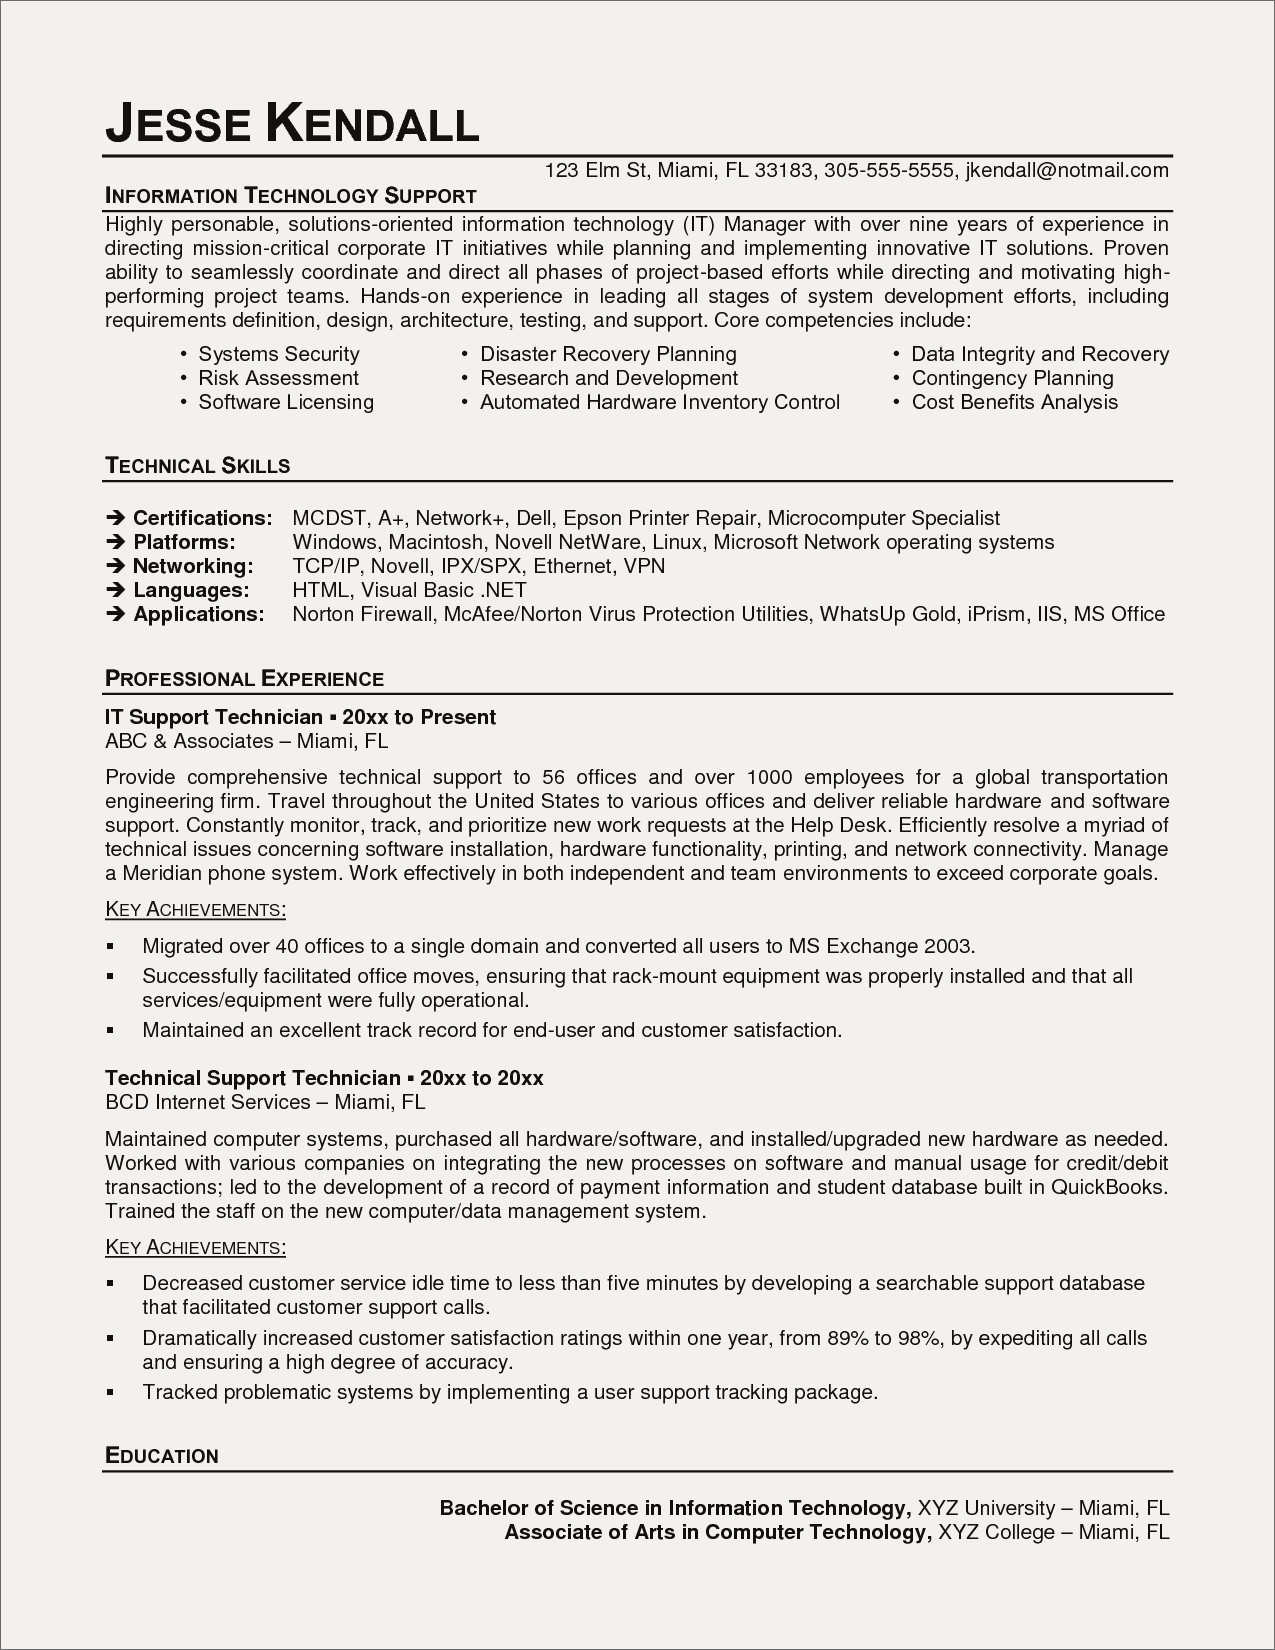 mechanic resume example Collection-Technician Resume Examples New Auto Mechanic Resume American Resume Sample New Student Resume 0d 3-q